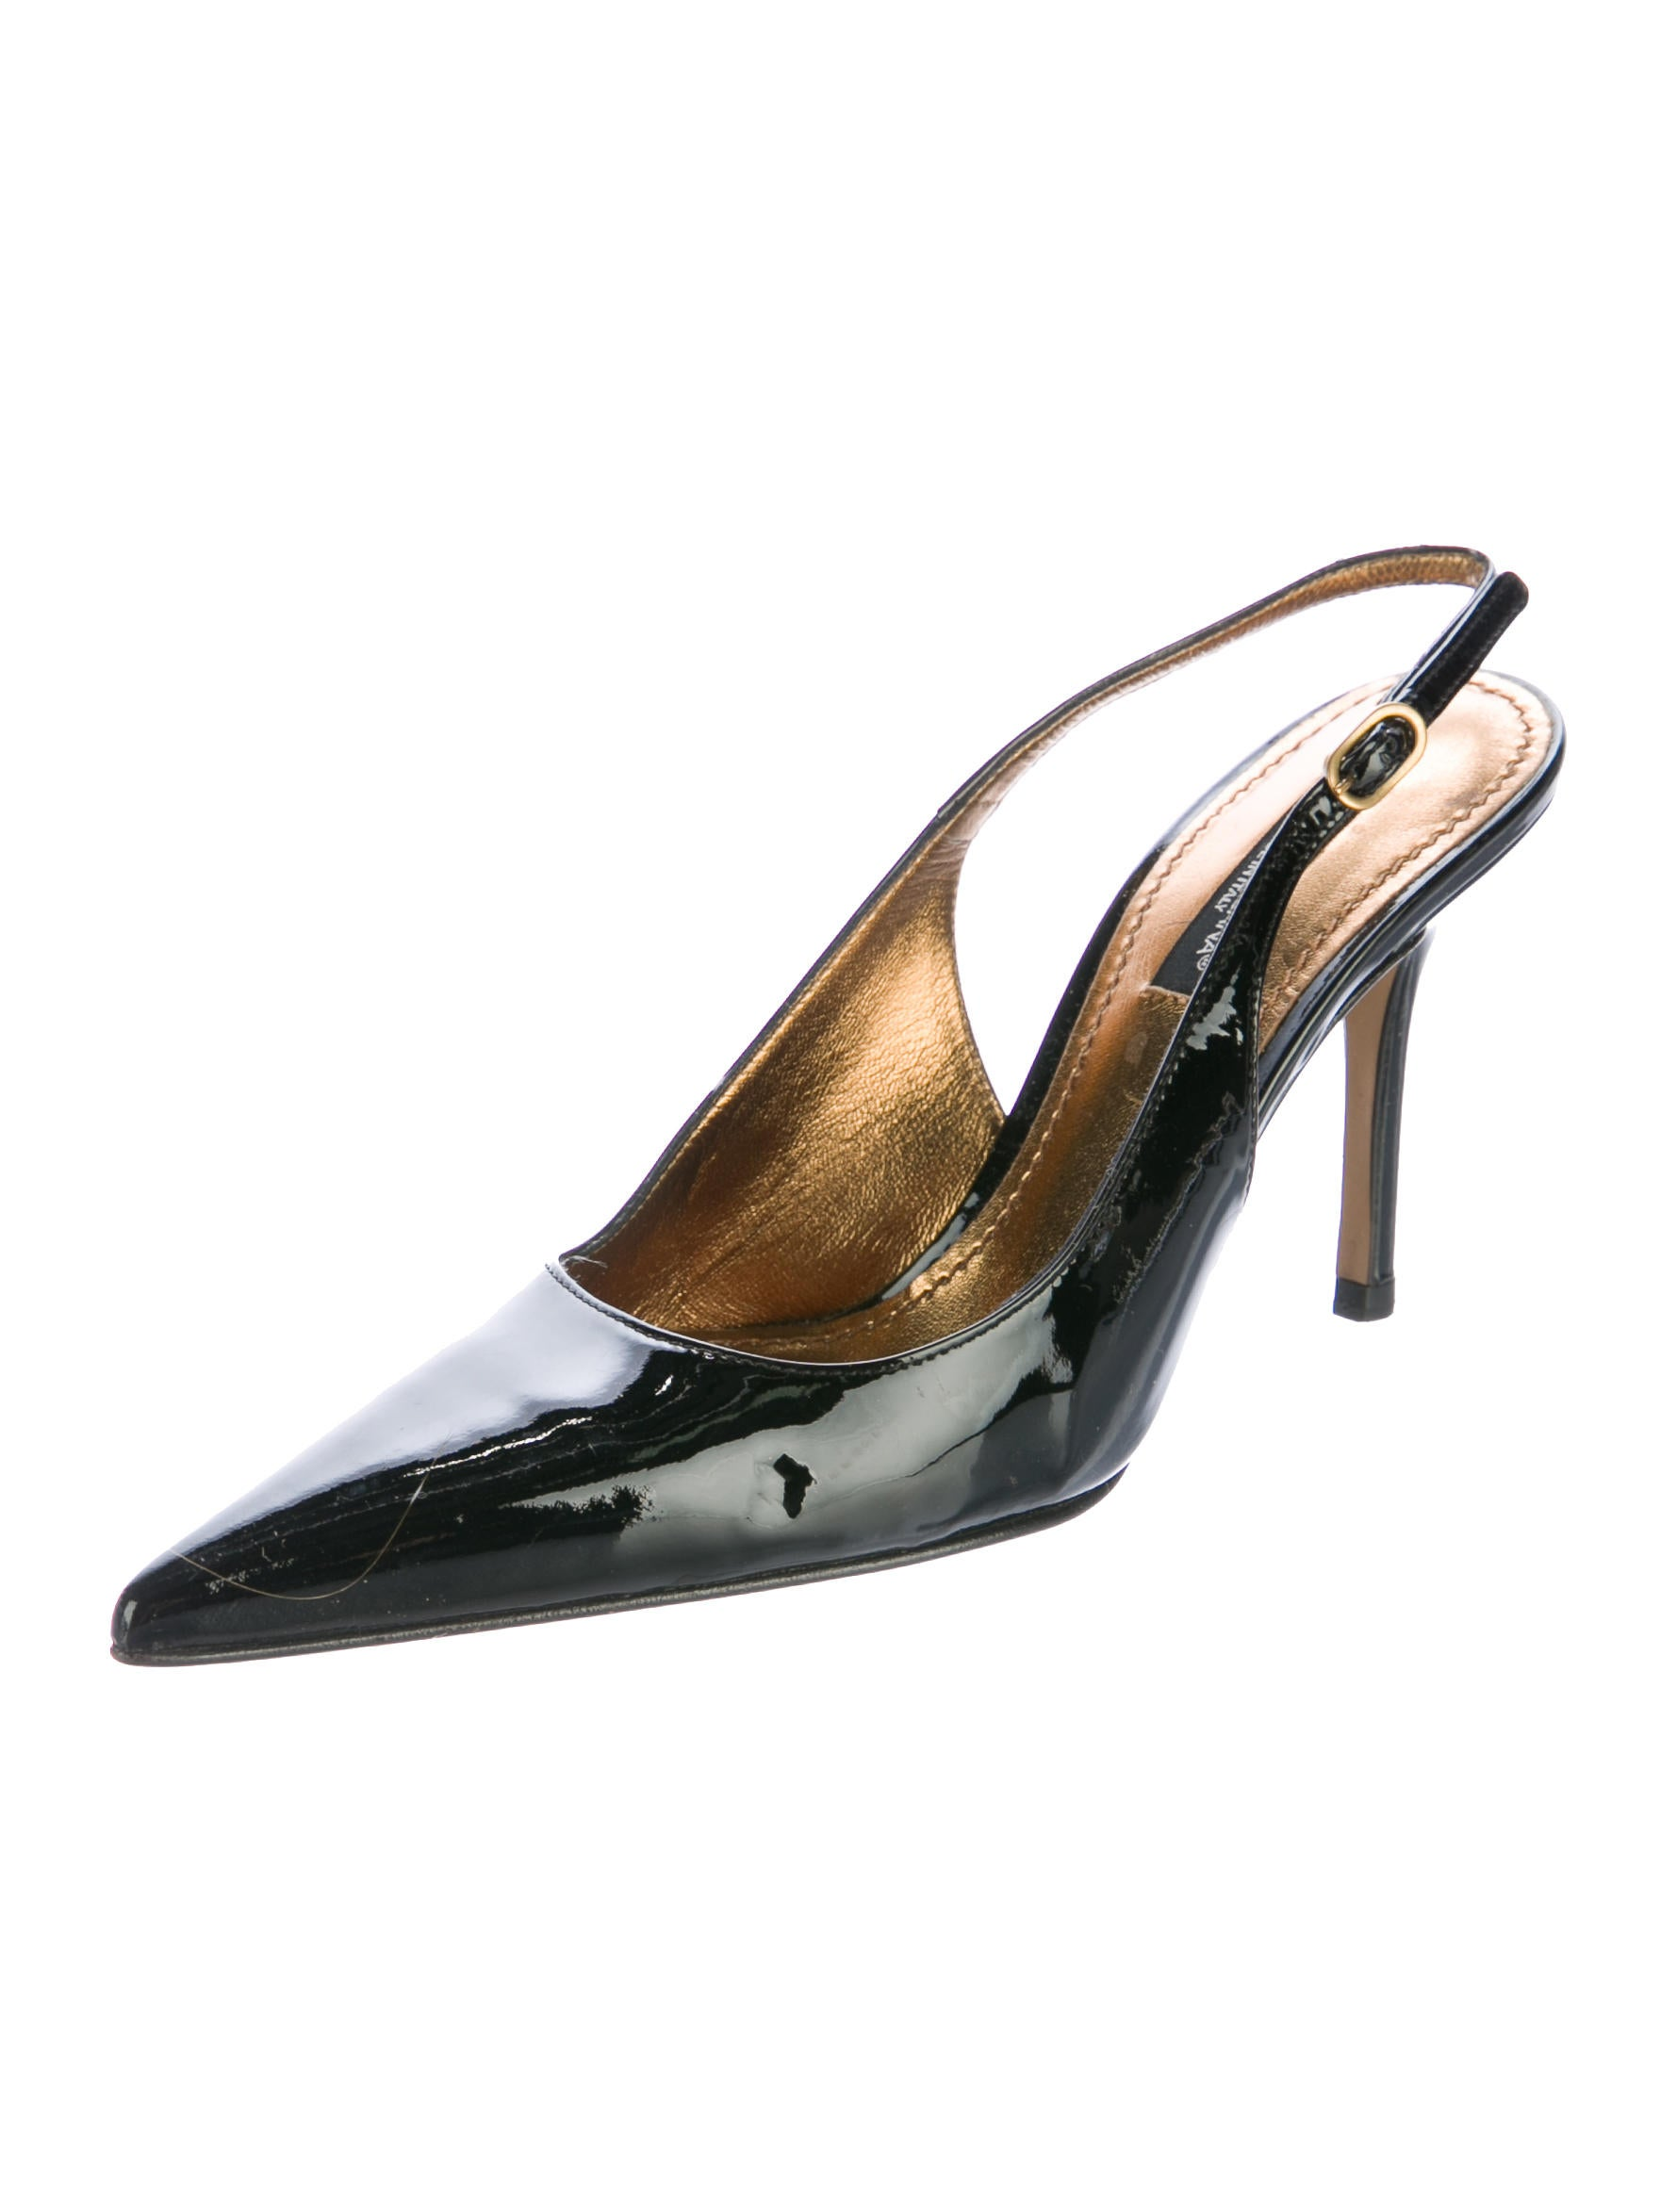 Dolce & Gabbana Pointed-Toe Slingback Pumps - Shoes - DAG86057 | The RealReal